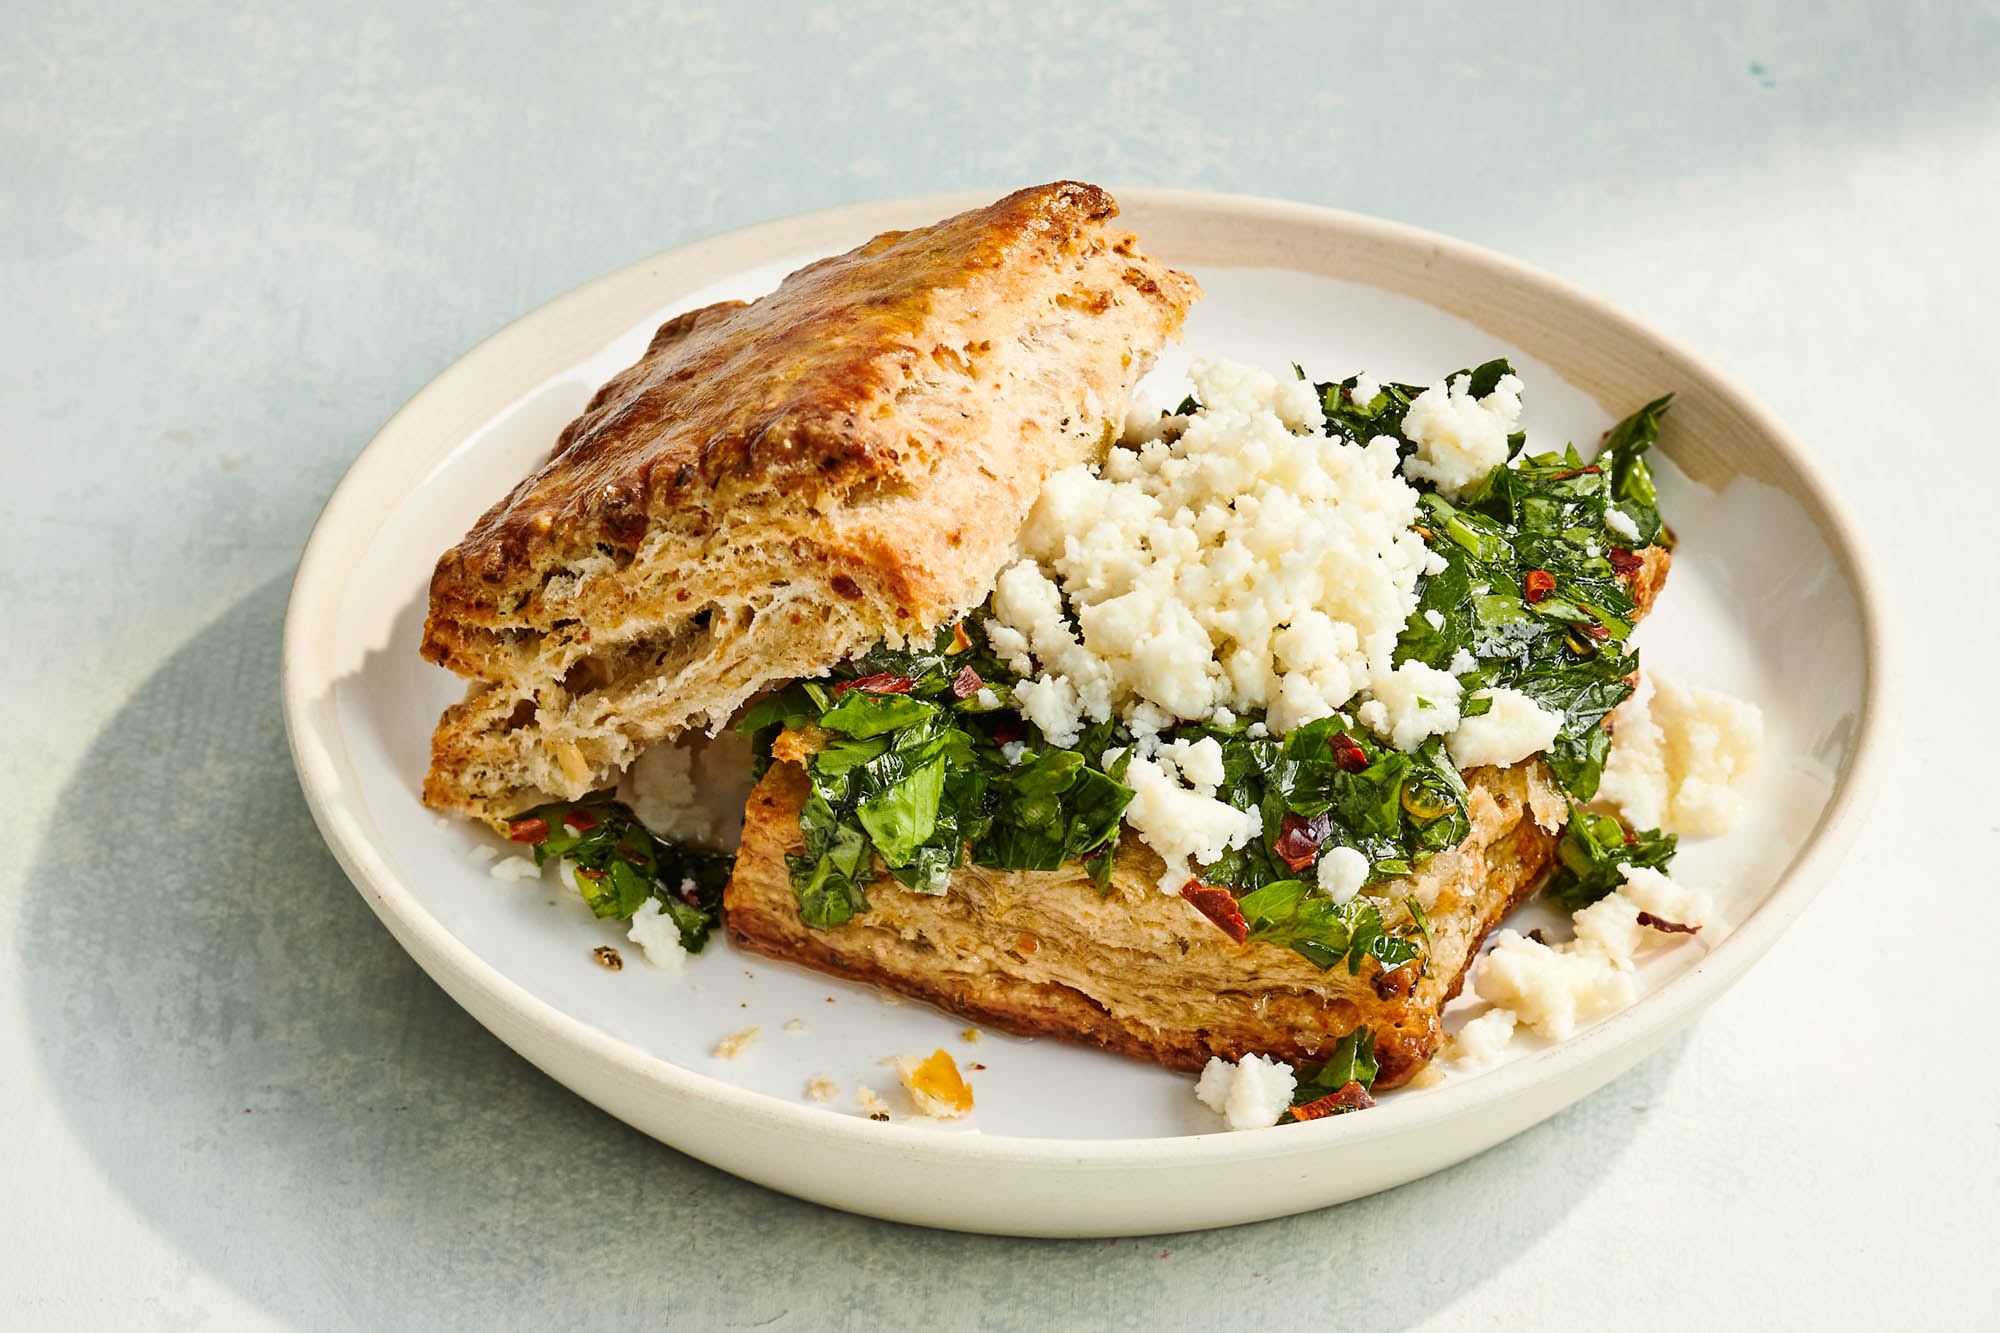 Queso Fresco Sourdough Biscuits with Chimichurri